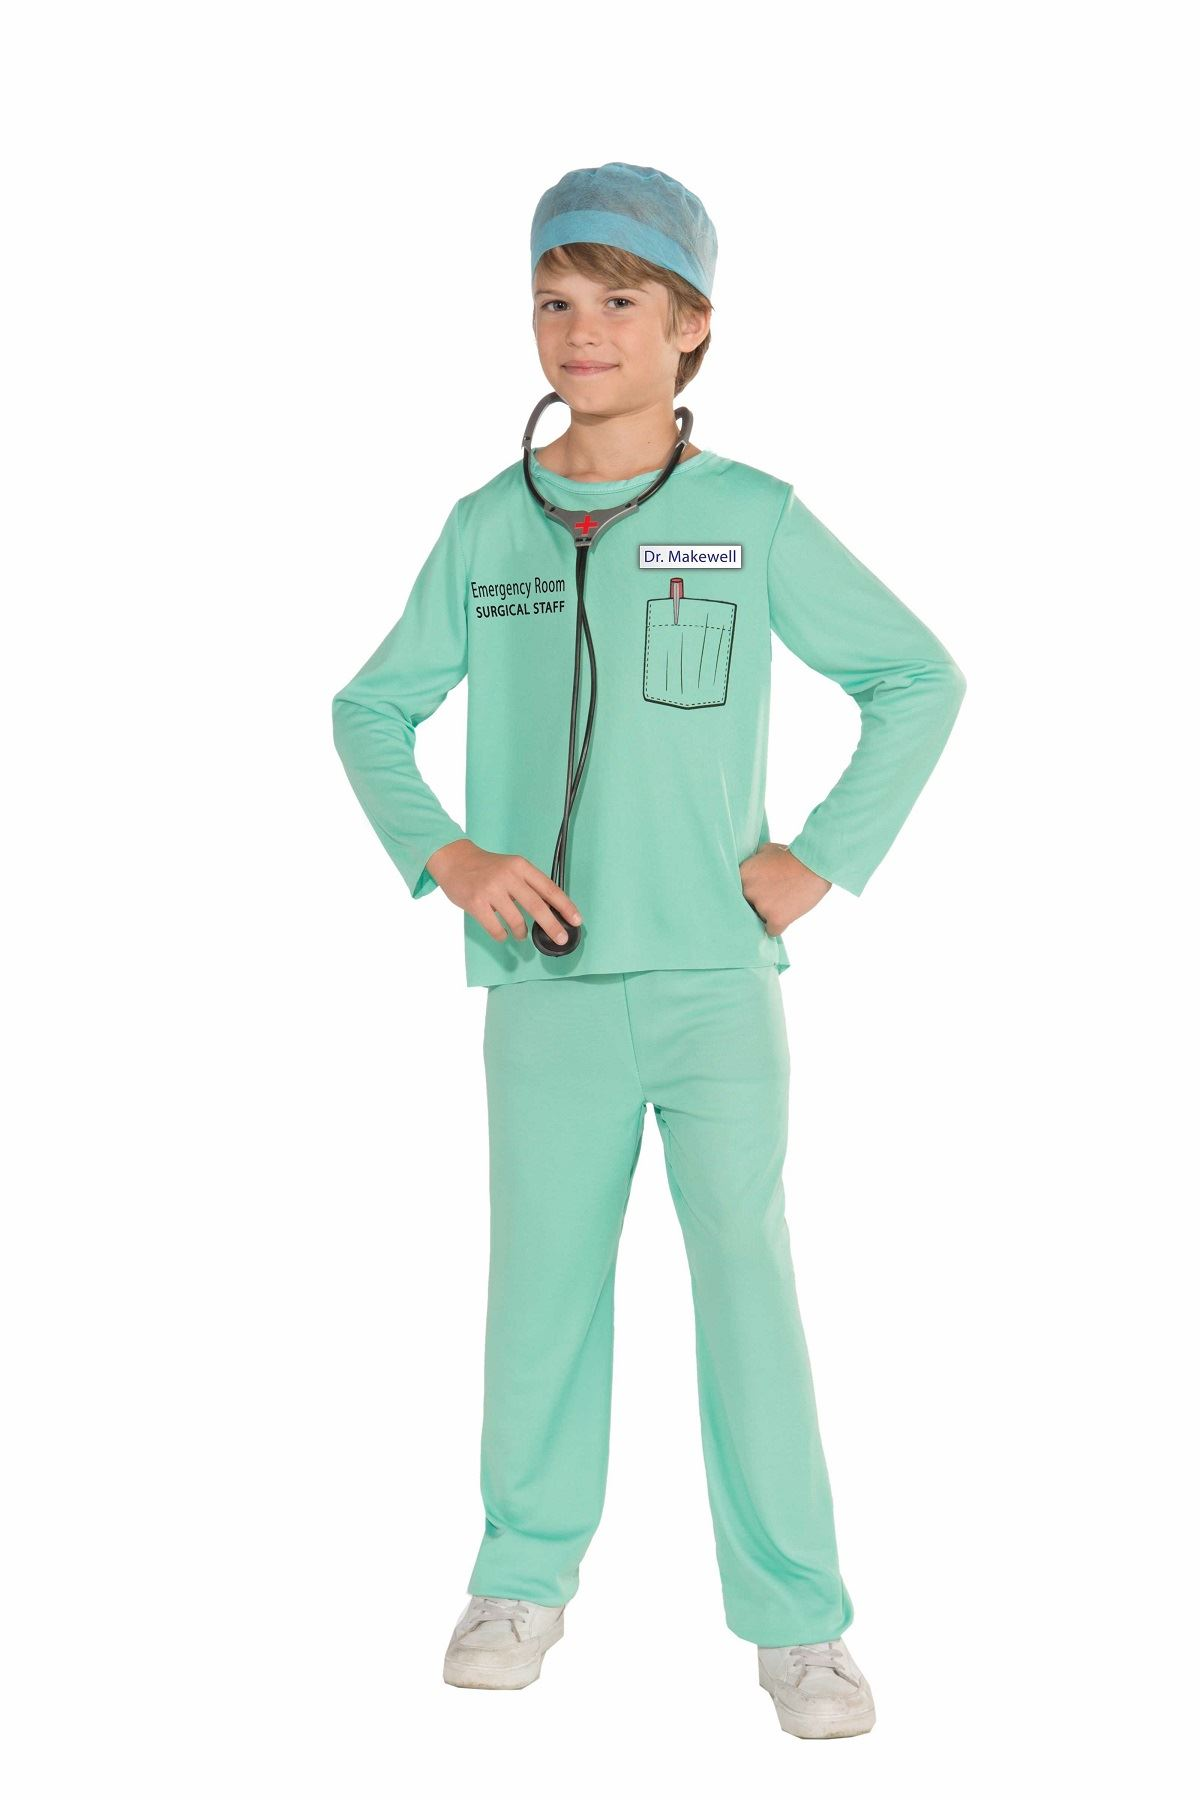 Kids Doctor Unisex Costume  sc 1 st  The Costume Land & Kids Doctor Unisex Costume | $14.99 | The Costume Land